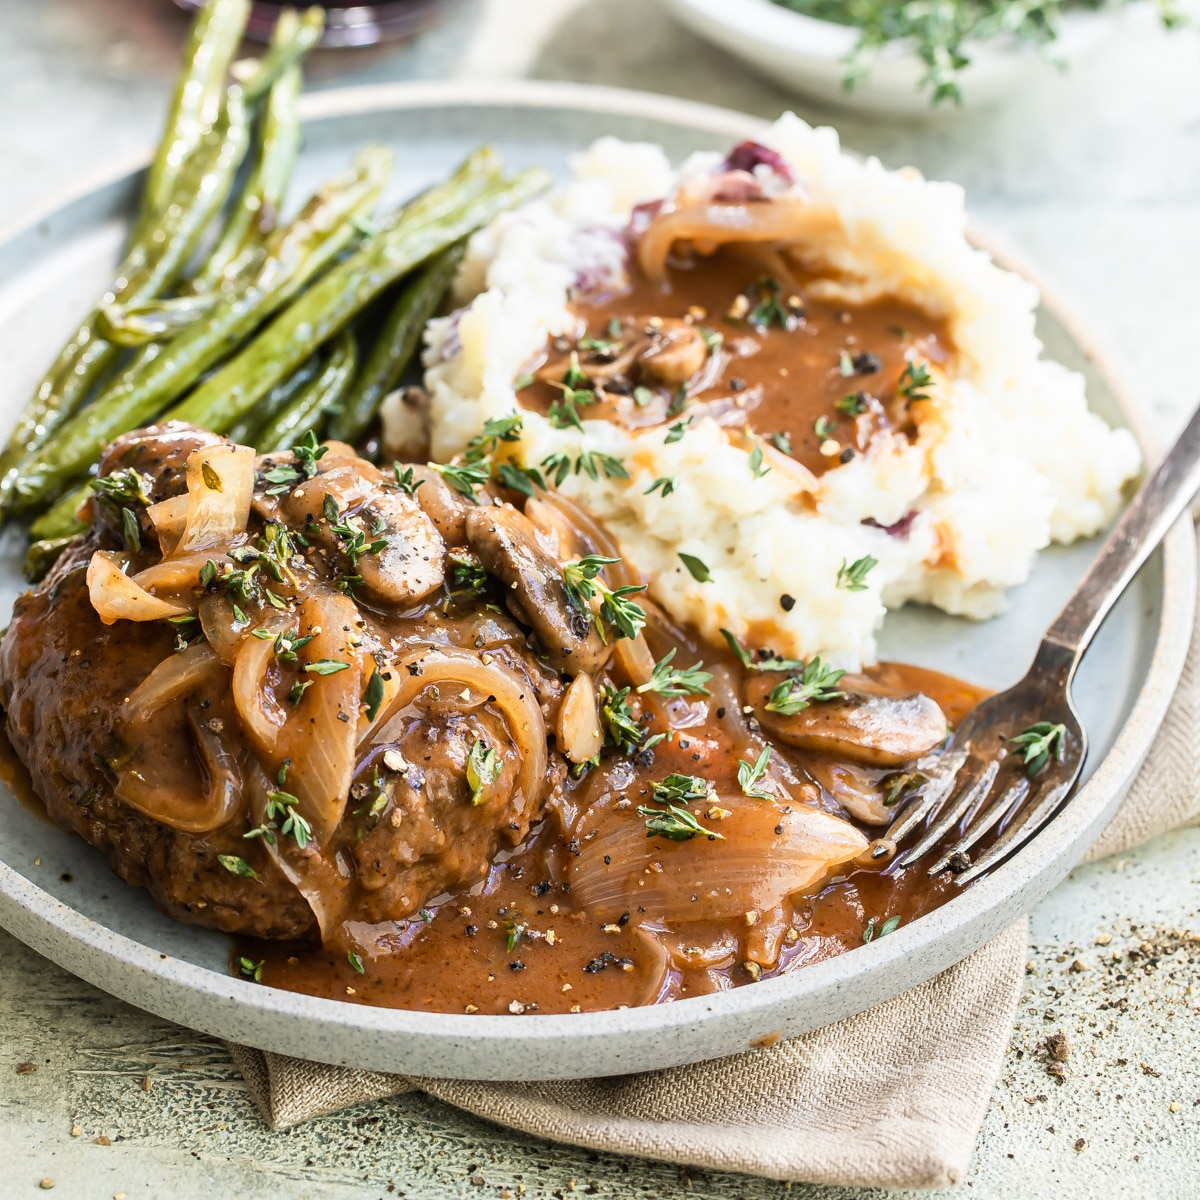 A salisbury steak on a plate with mashed potatoes, gravy, and green beans.